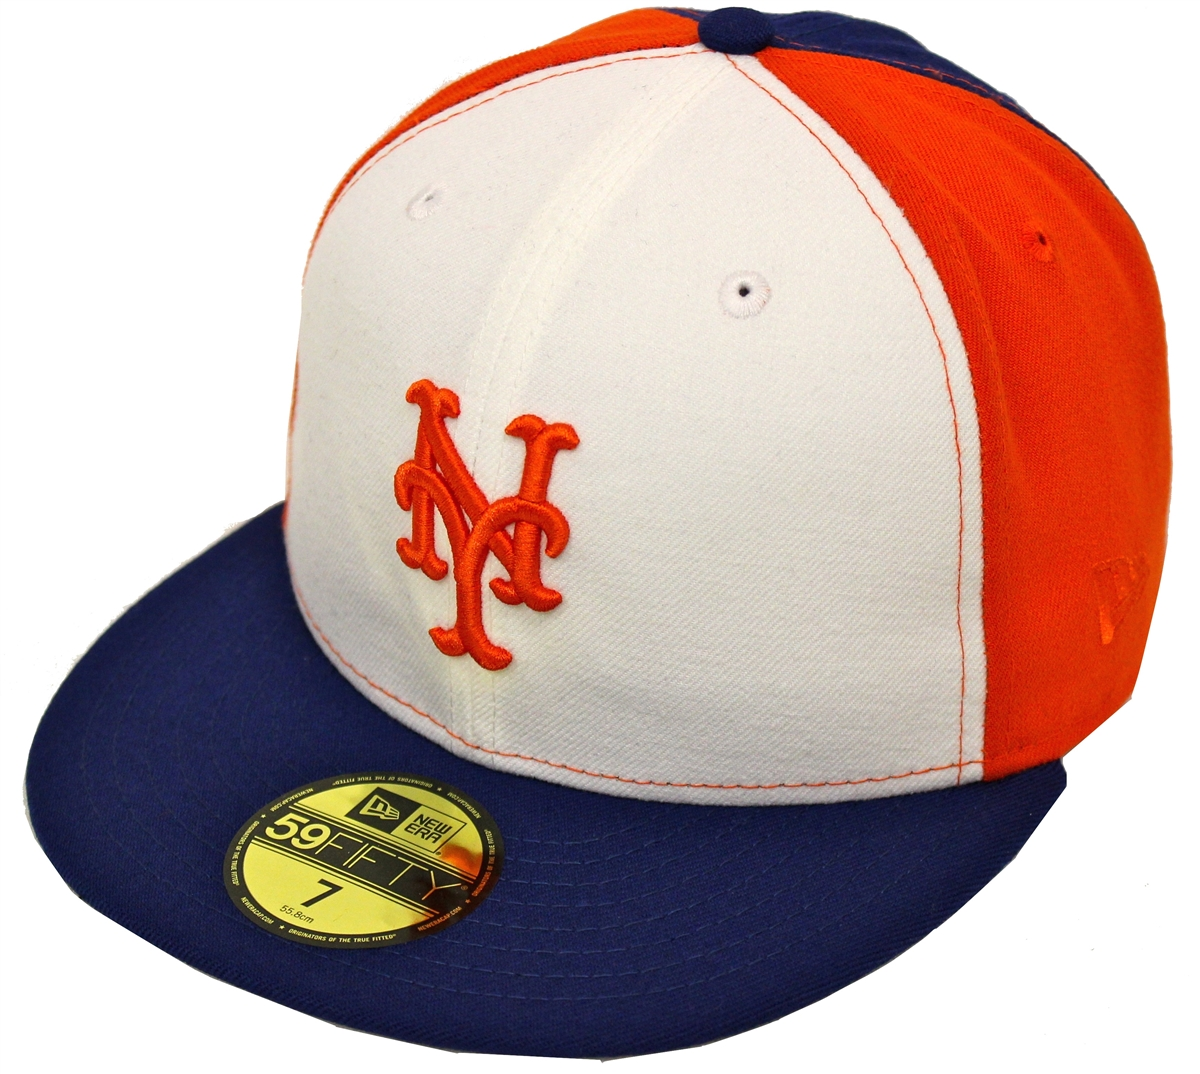 New Era 59Fifty Pinwheel New York Mets White Orange Blue Fitted ... c587a7dd2